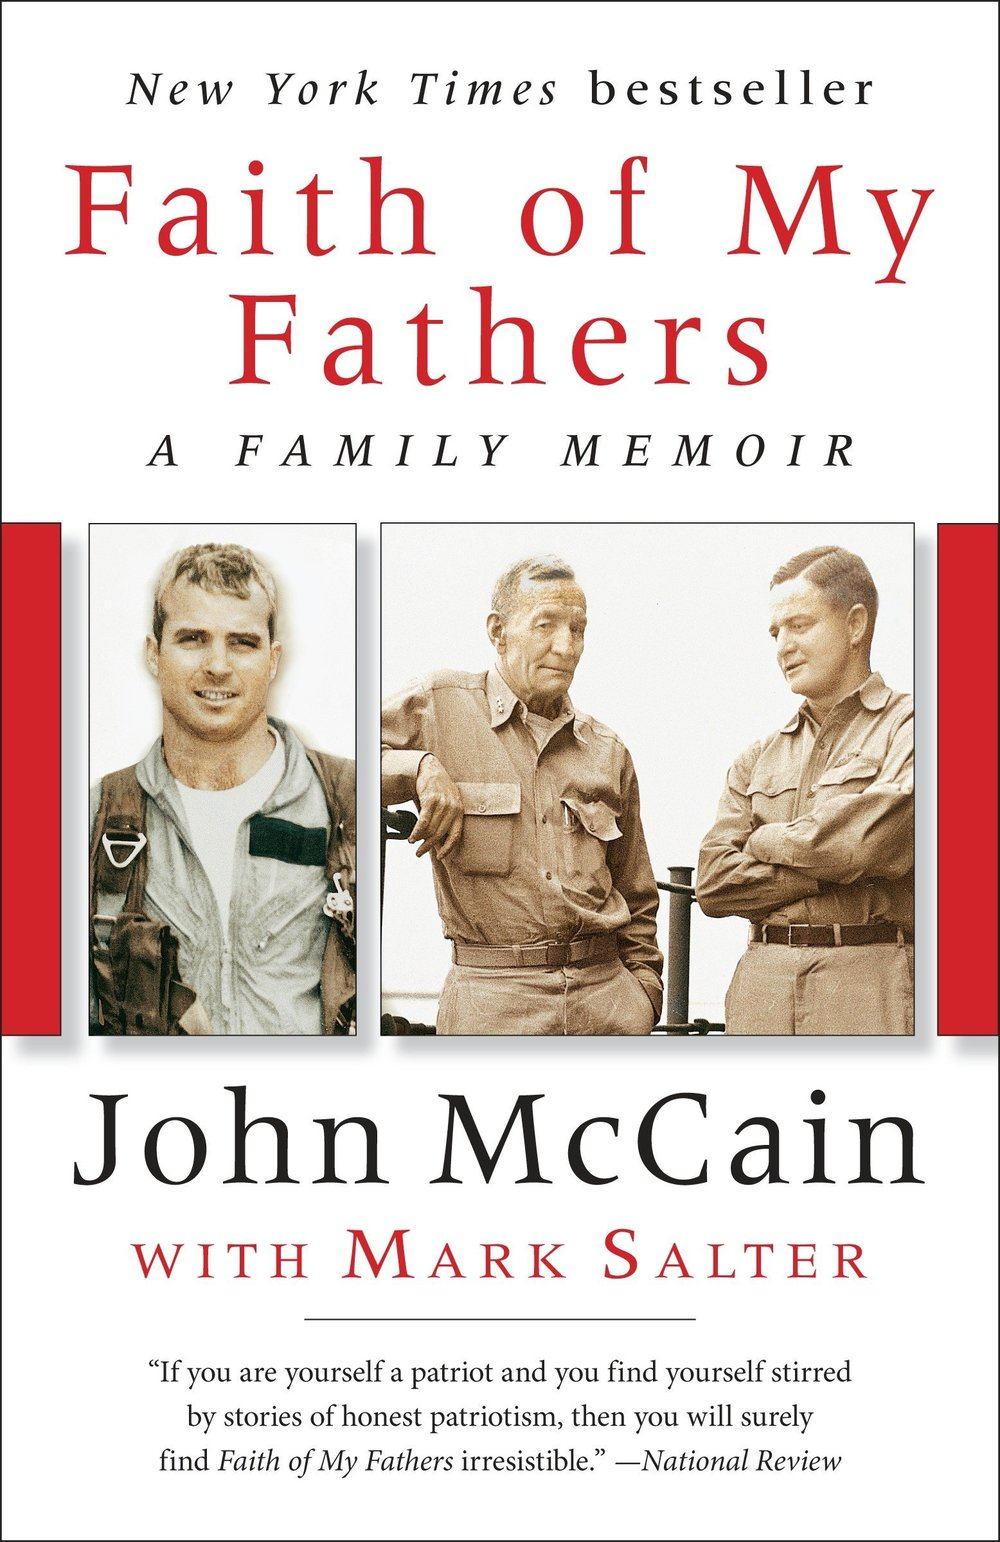 Faith-of-My-Fathers_McCain.jpg